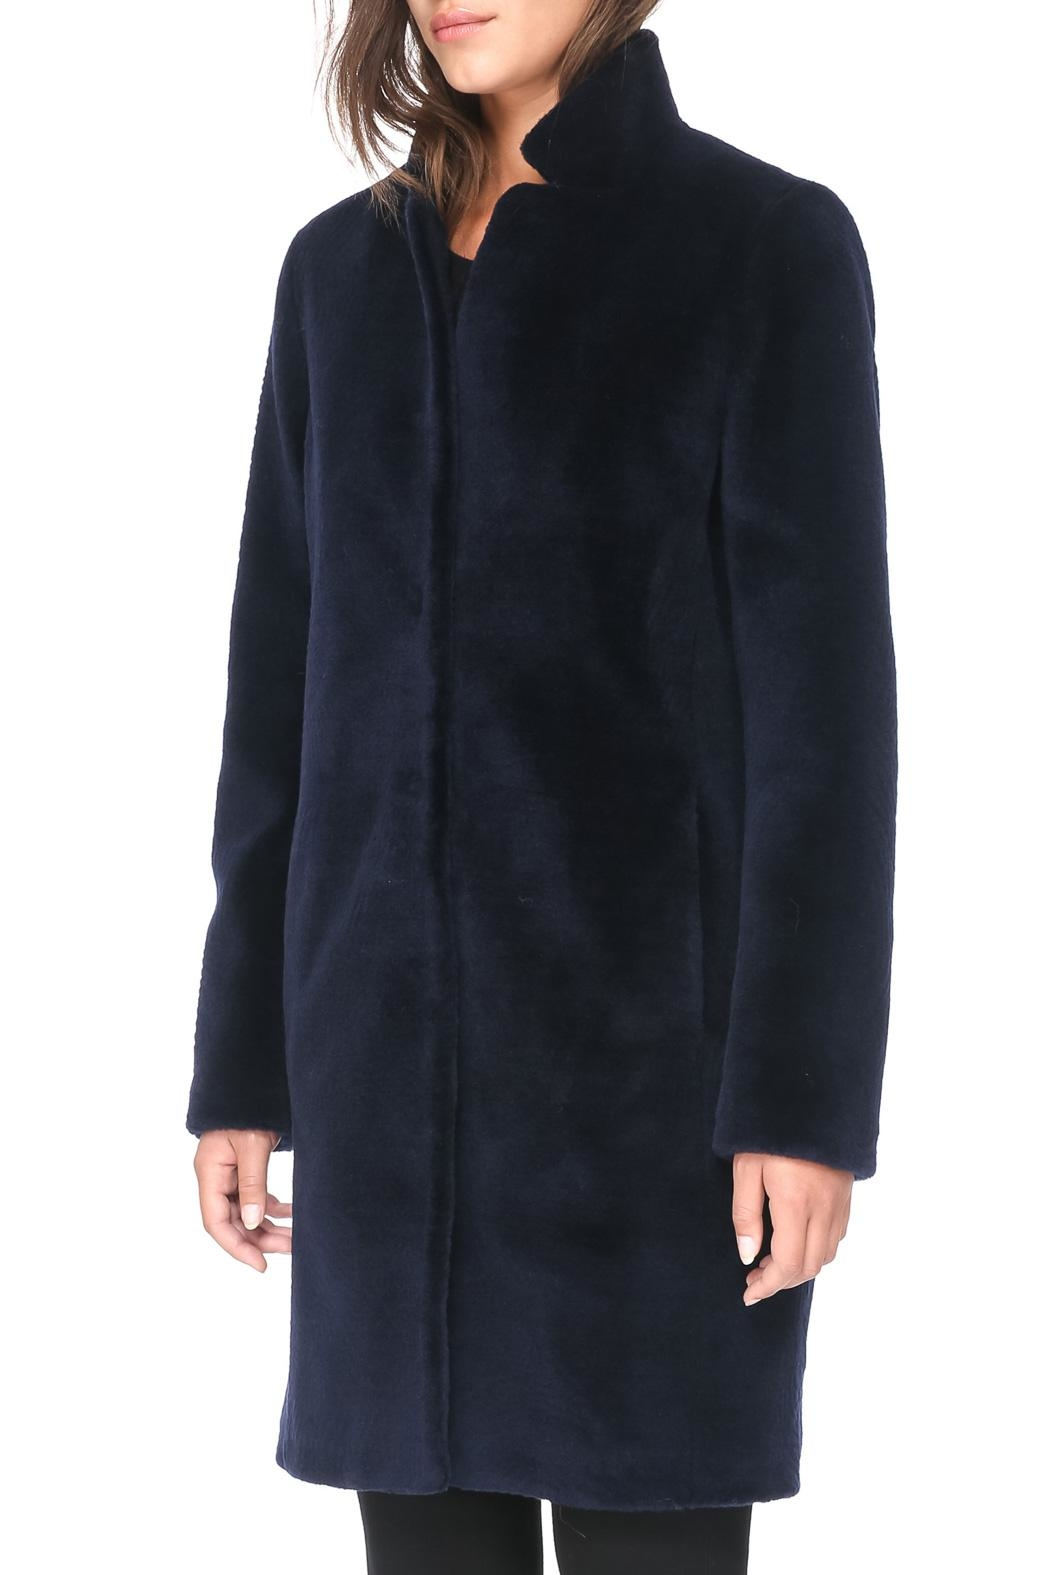 Soia & Kyo Marceline Wool Coat - Side Cropped Image